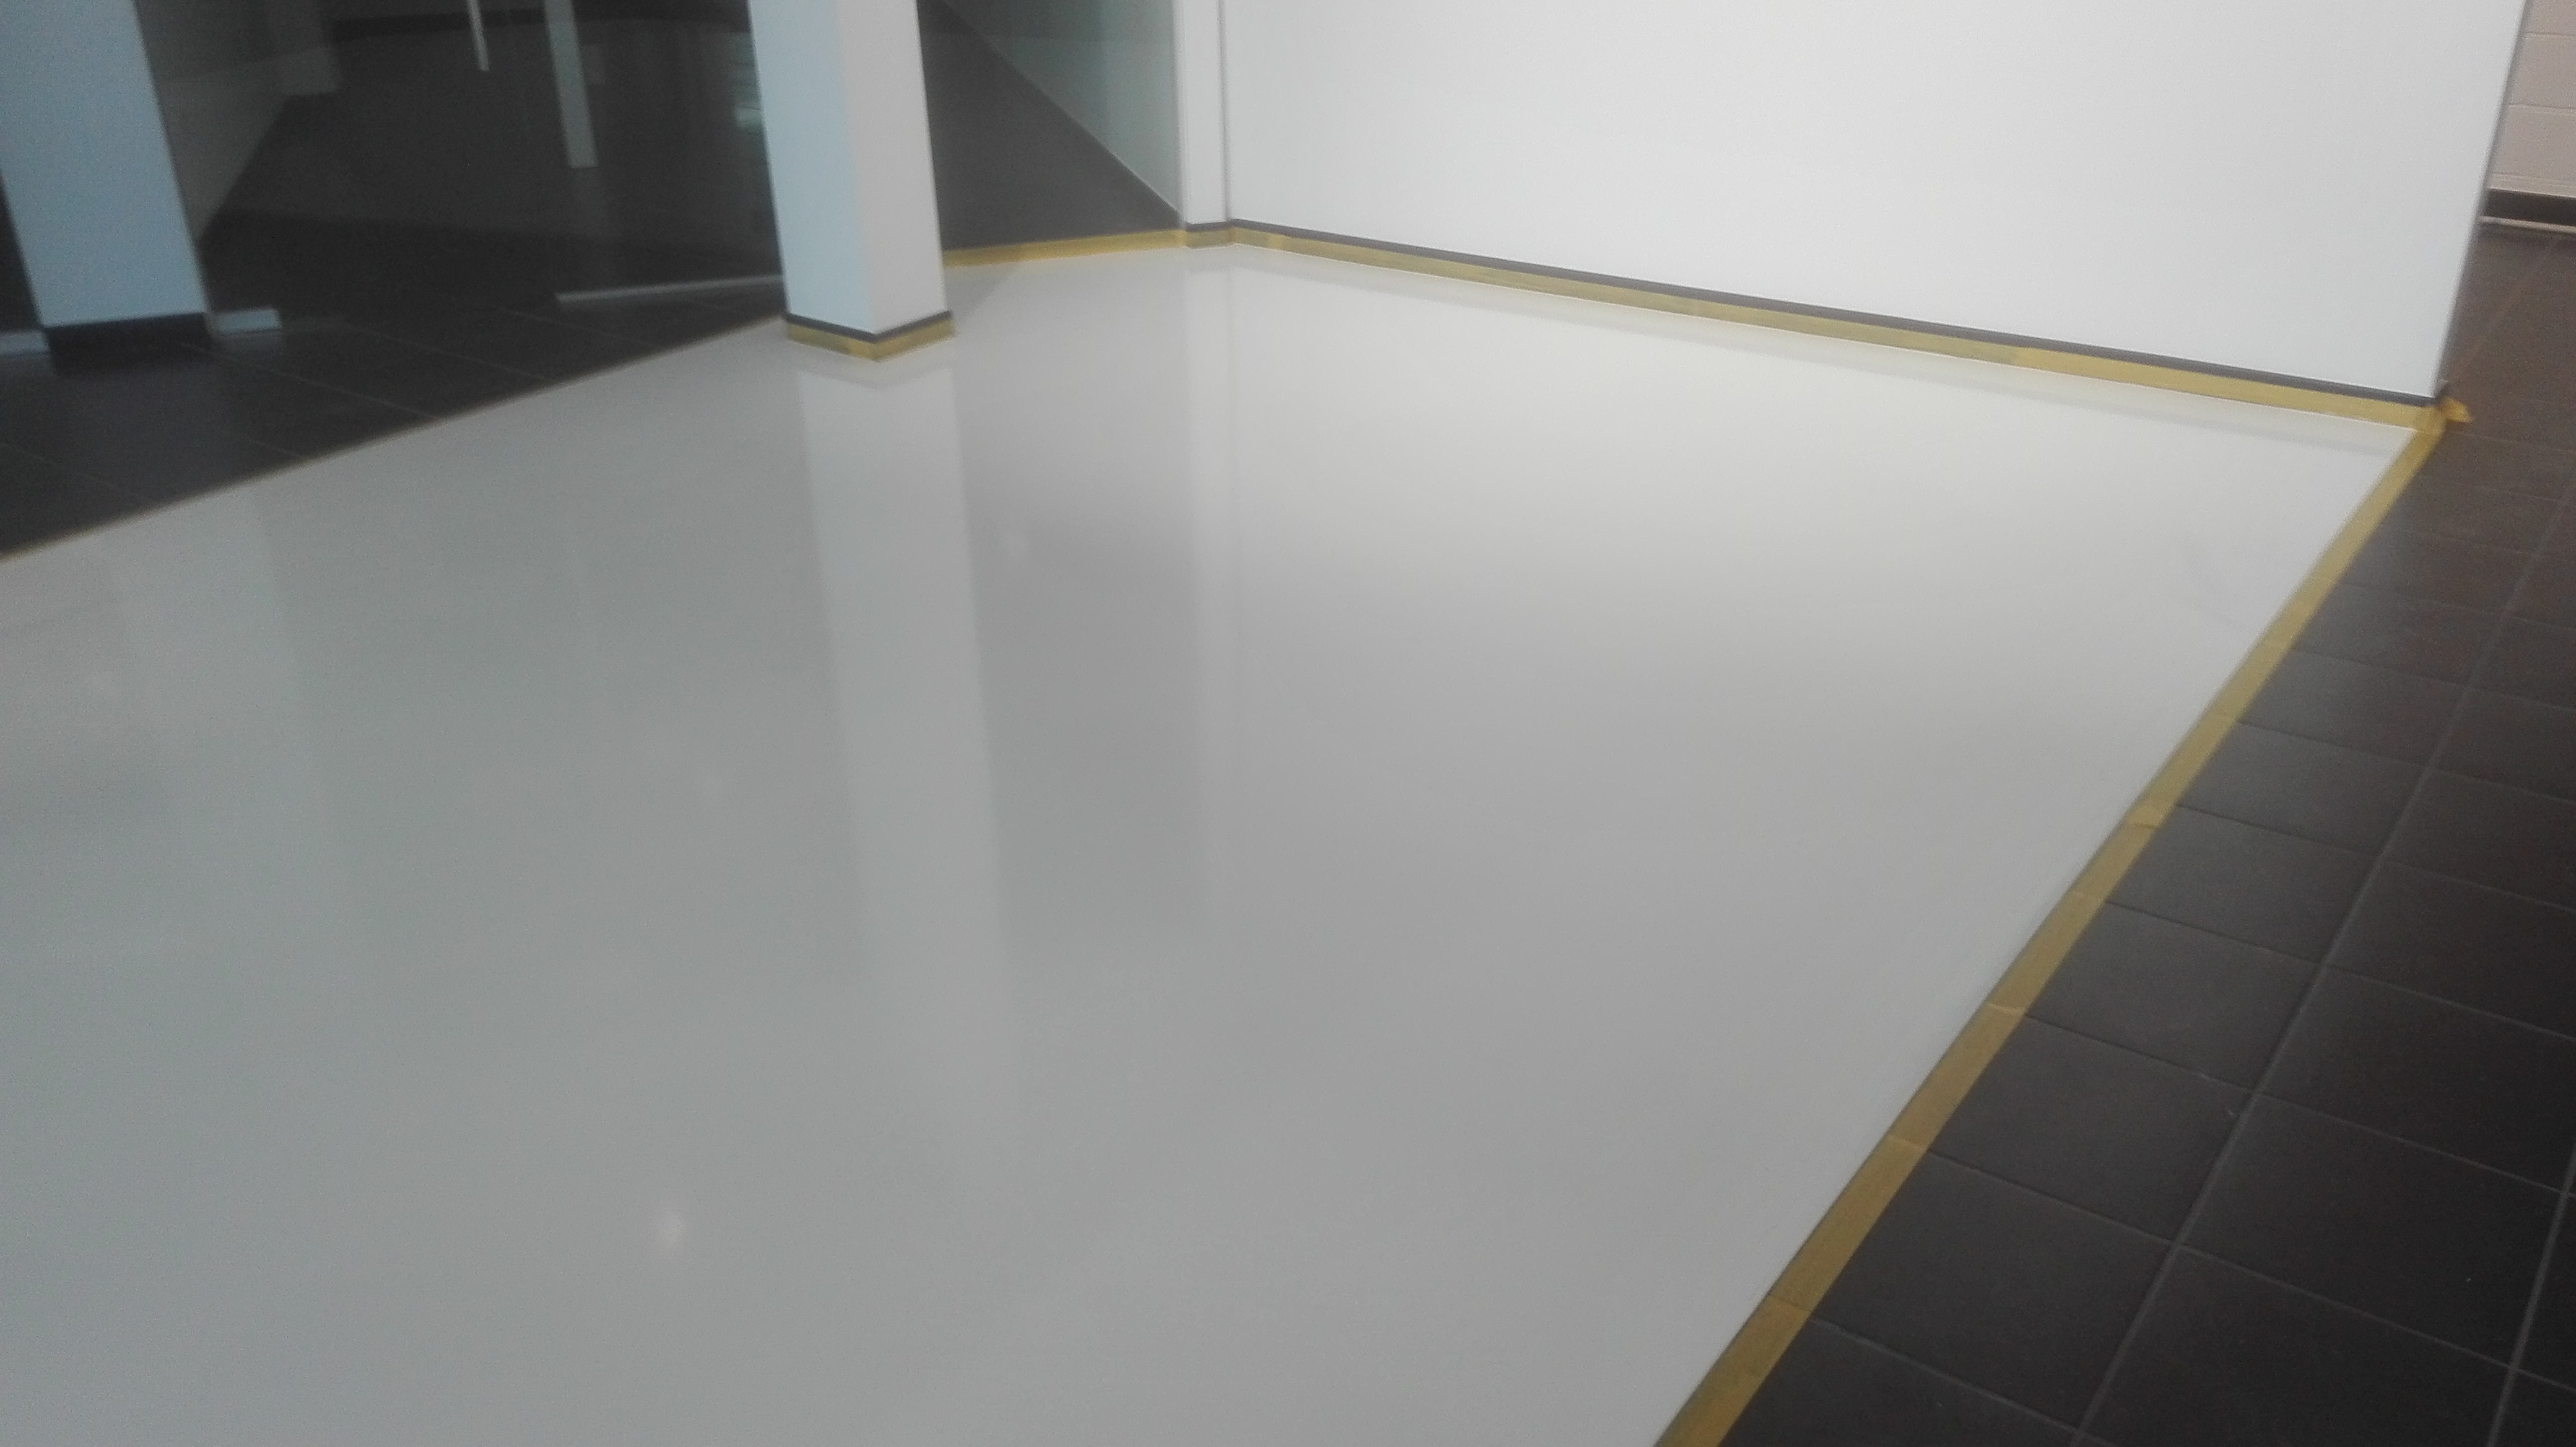 Bioracer Tessenderlo witte Epoxy-Design gietvloer in showroom